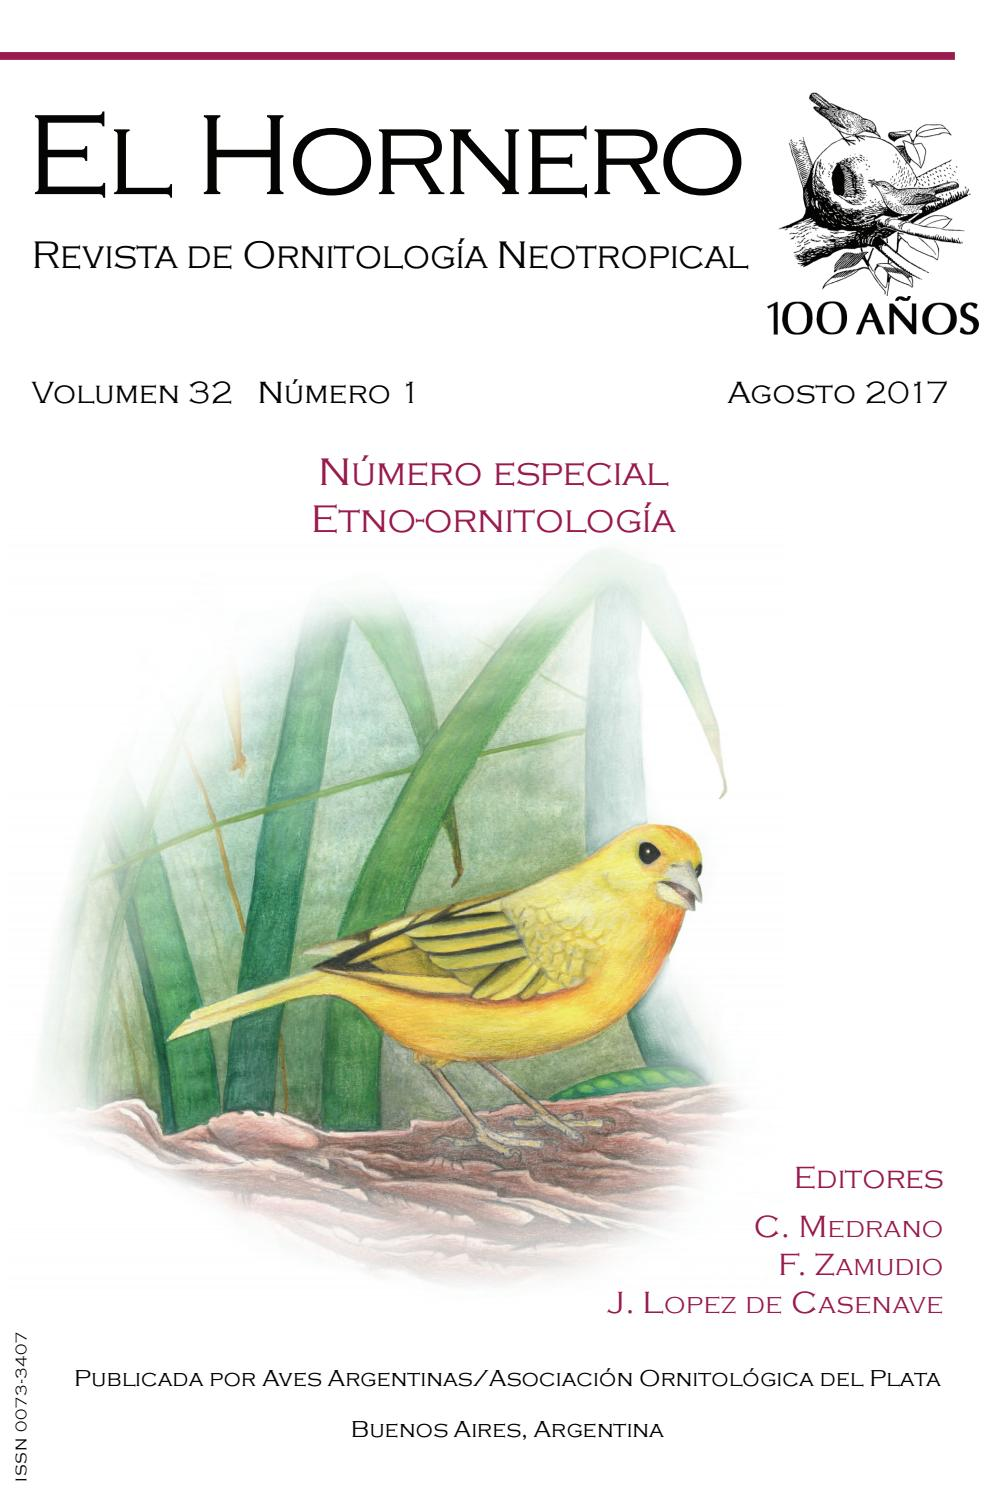 El Hornero V32N1 by Aves Argentinas - issuu